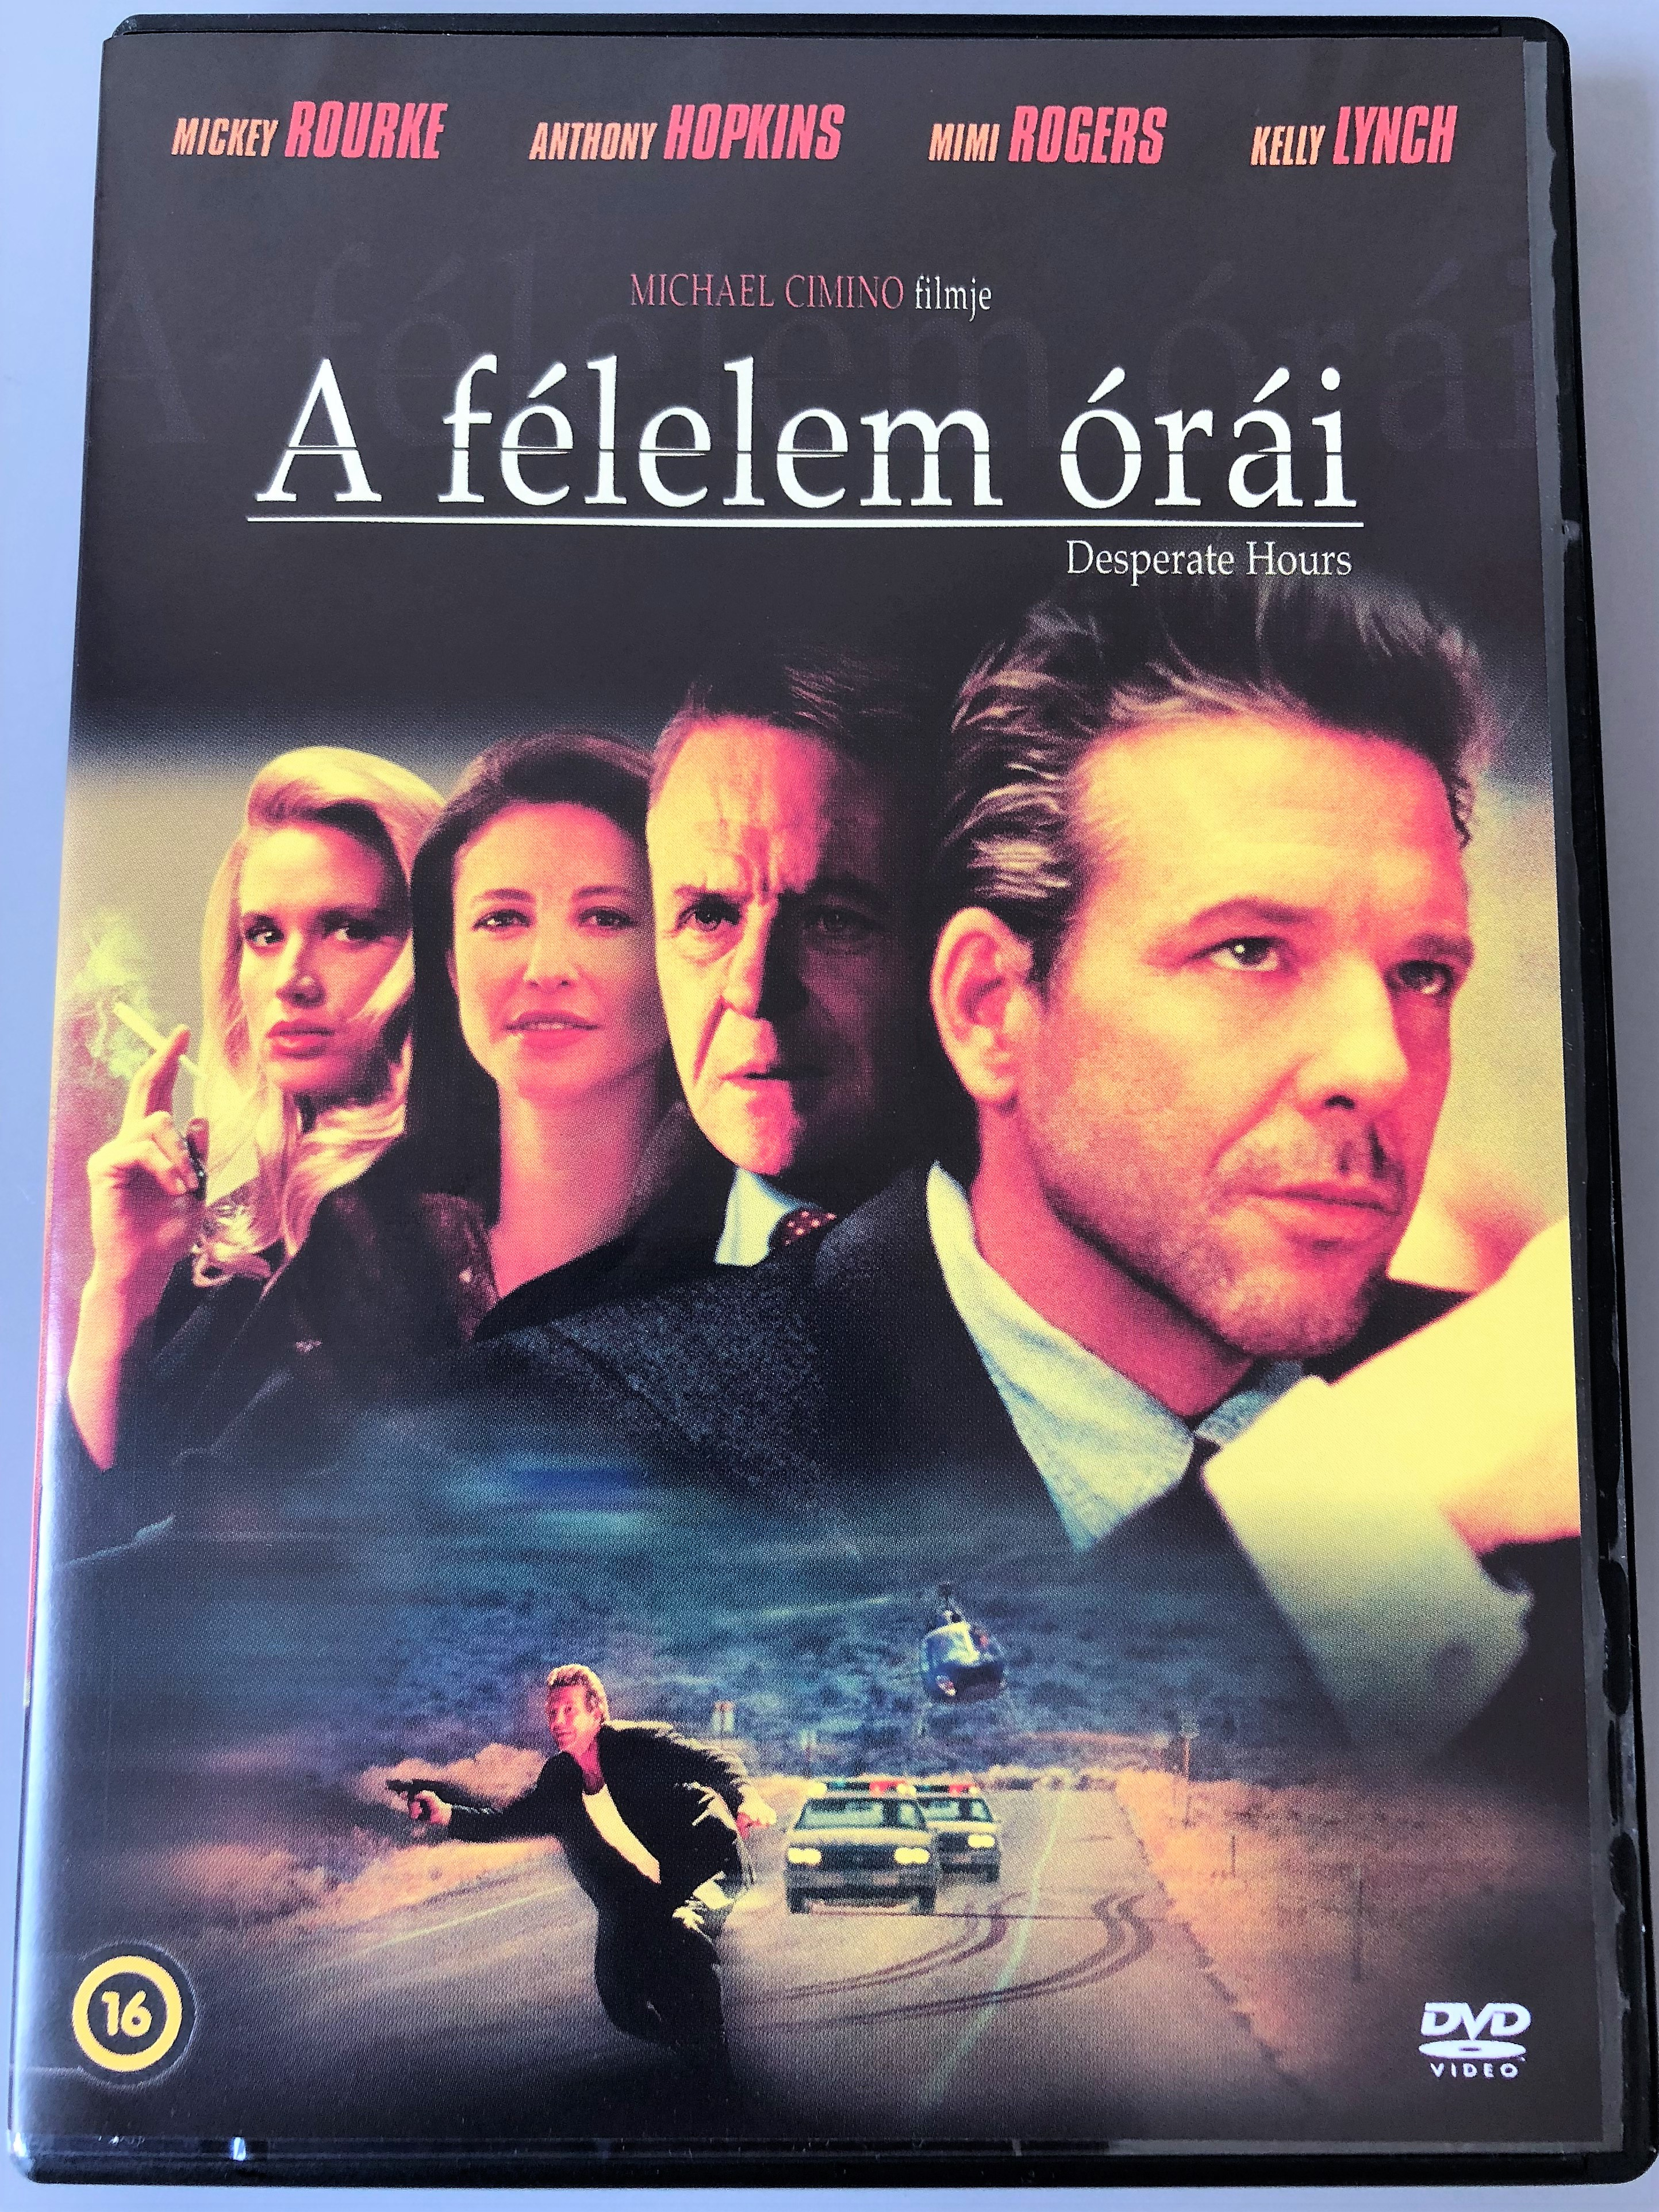 desperate-hours-dvd-1990-a-f-lelem-r-i-directed-by-michael-cimino-starring-mickey-rourke-anthony-hopkins-mimi-rogers-lindsay-crouse-kelly-lynch-1-.jpg